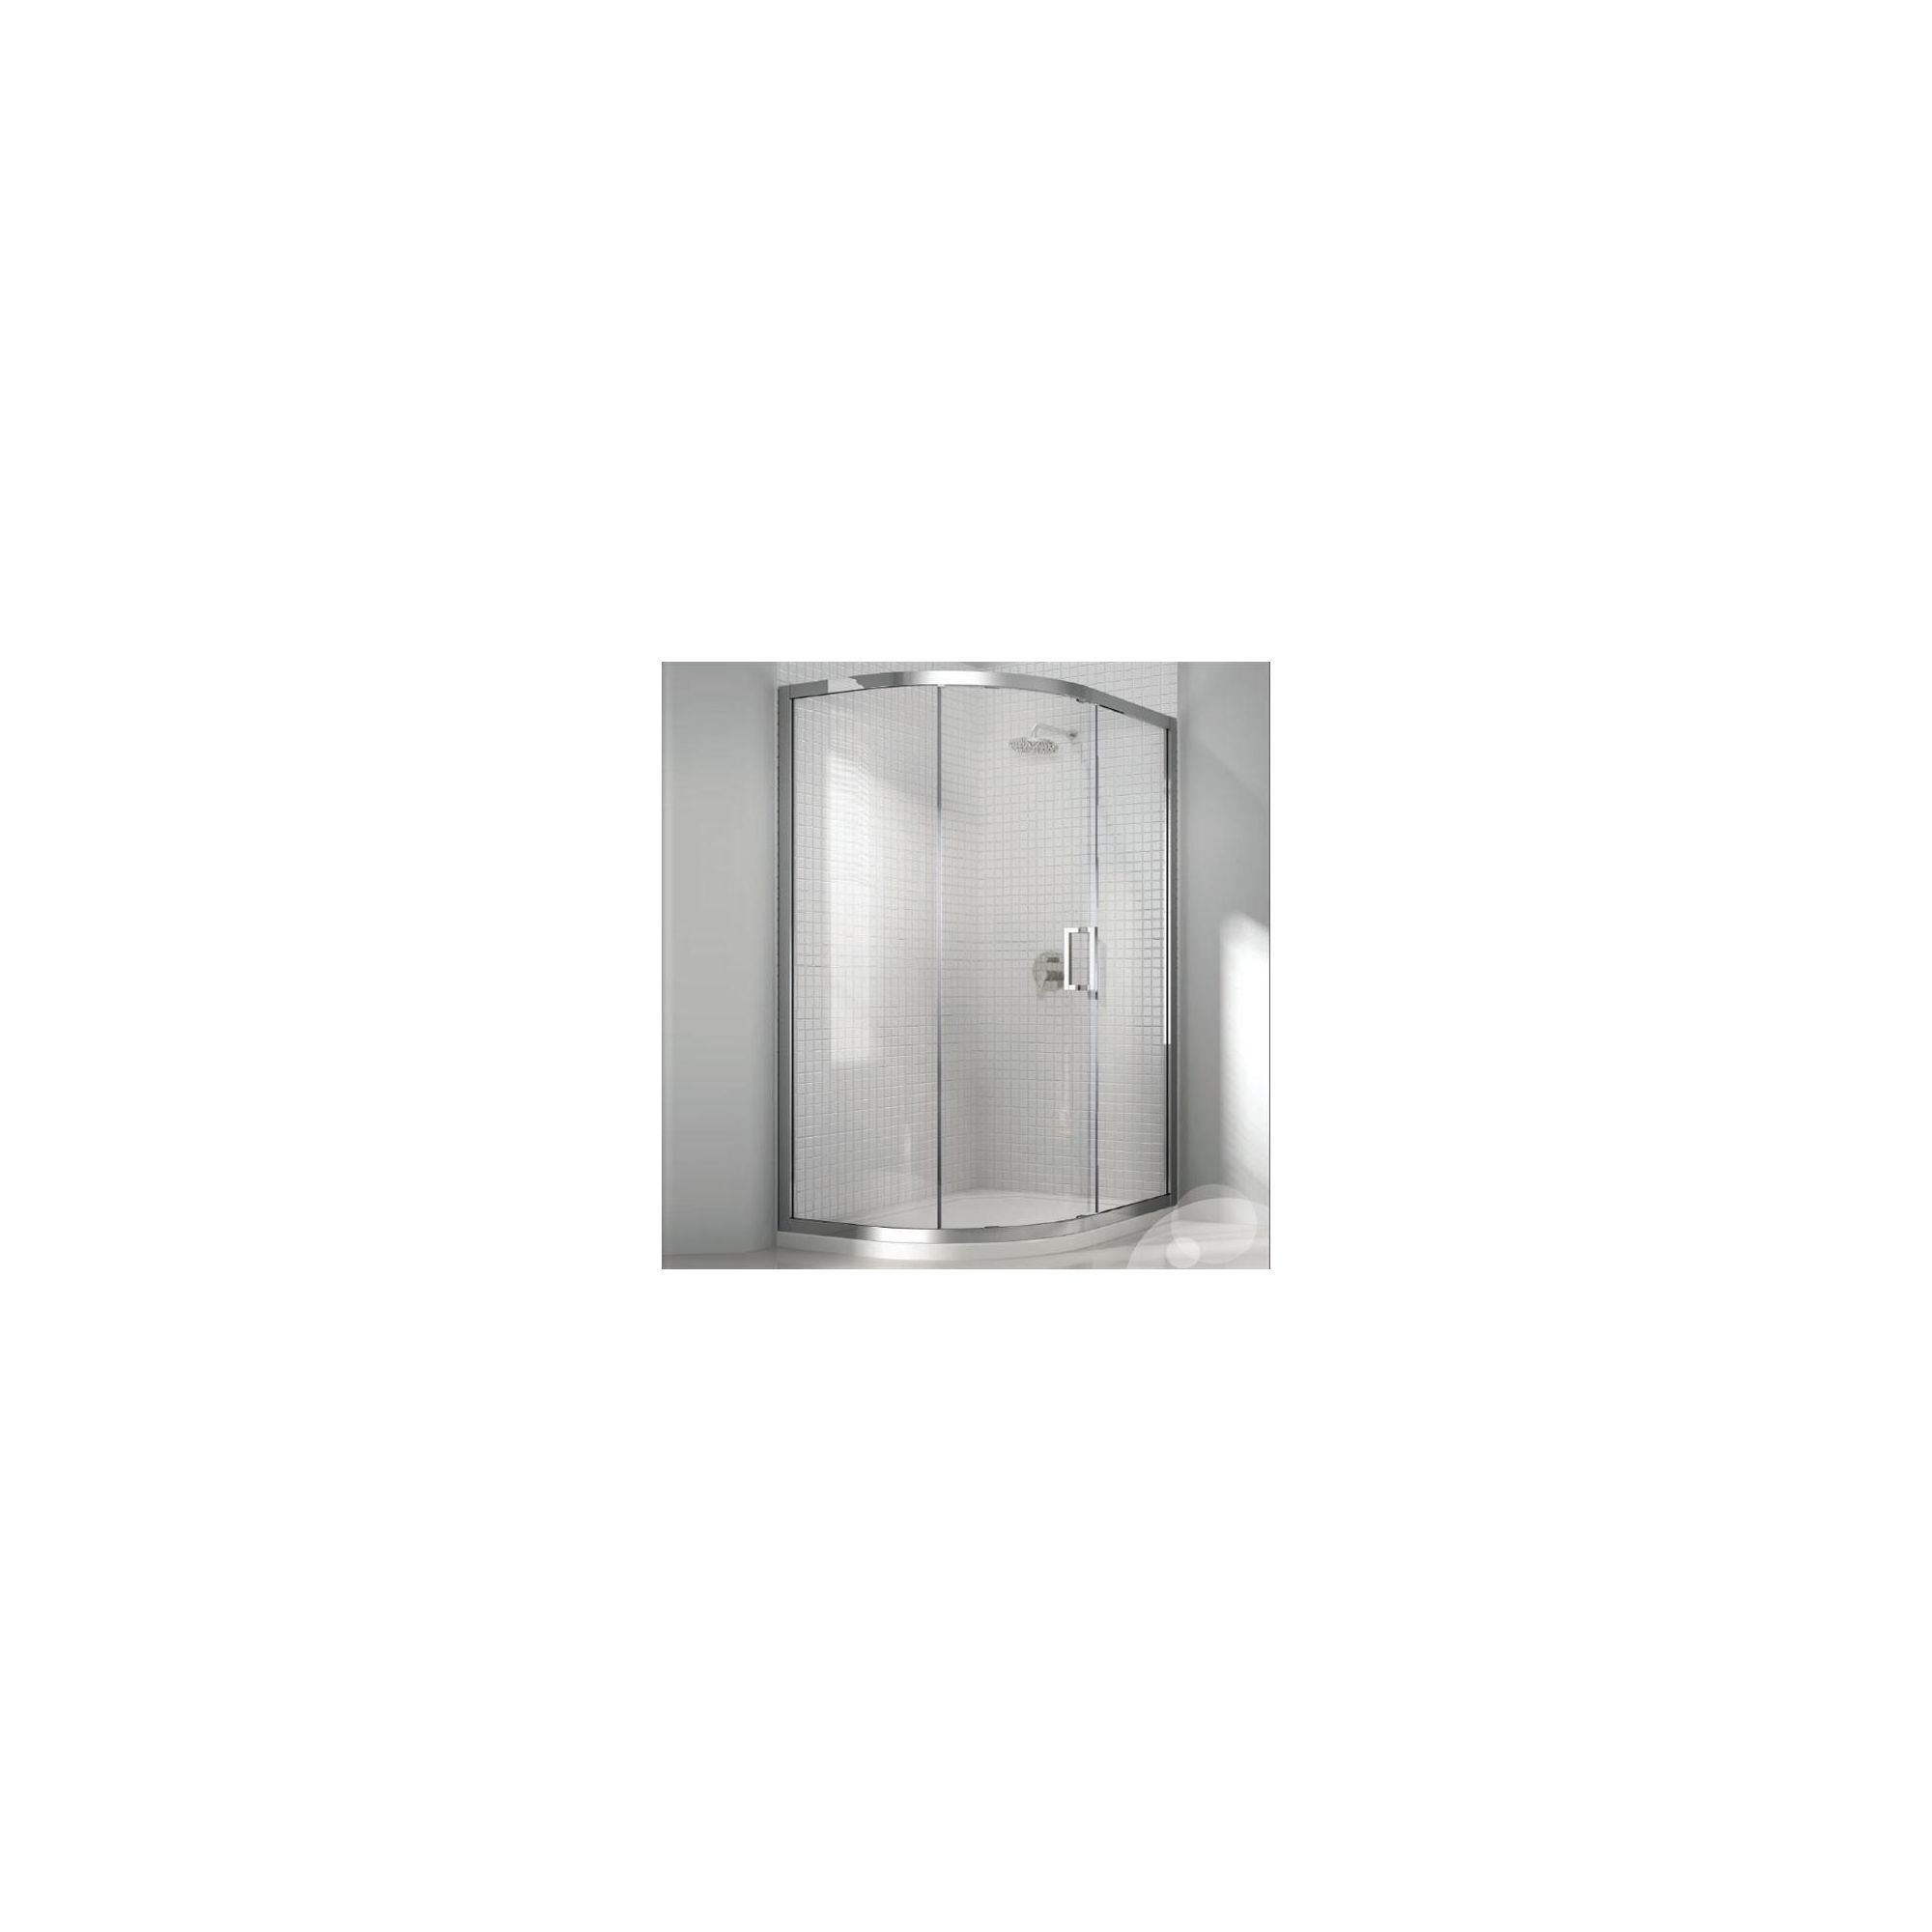 Merlyn Vivid Eight Offset Quadrant Shower Door, 1200mm x 900mm, 8mm Glass at Tesco Direct